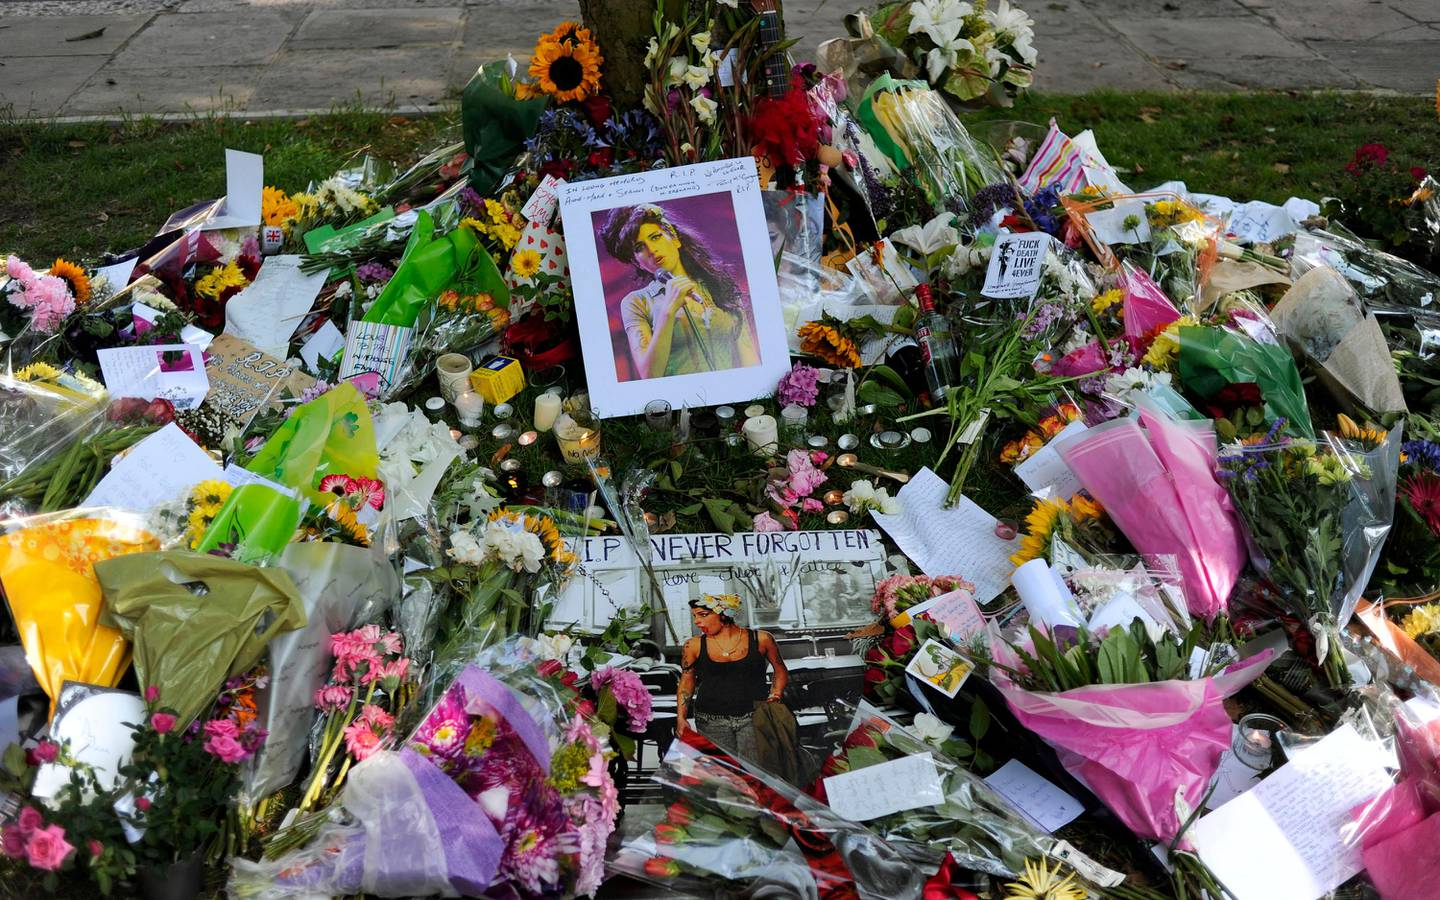 Flowers, pictures and messages are left in tribute to late soul music and pop star Amy Winehouse, near the house in north London where her body was found the previous day, on July 24, 2011. Soon after the 27-year-old songstress's death was announced on July 23, fans started gathering in Camden Square, north London, to bid farewell to a star whose songs often reflected her tempestuous lifestyle. AFP PHOTO/CARL COURT